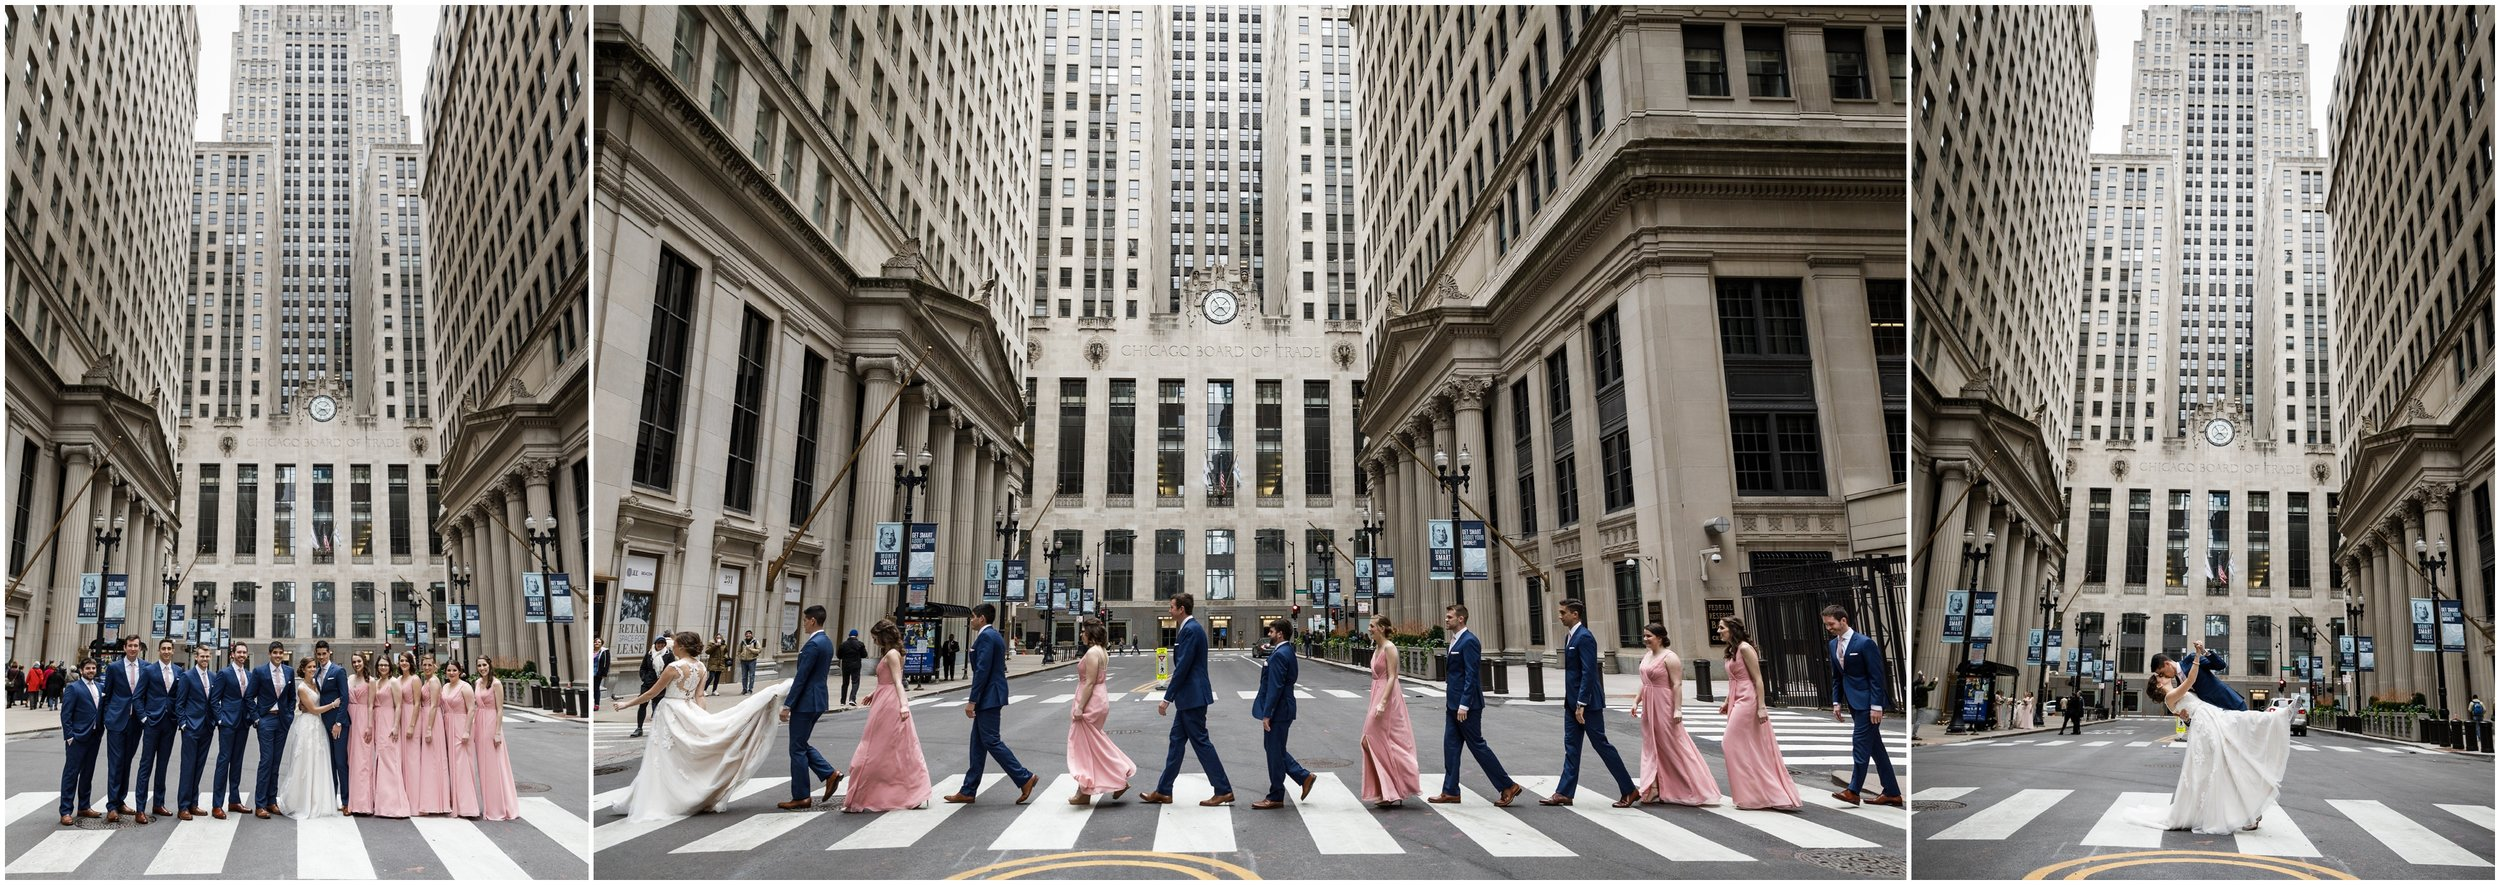 wedding party posing in front of the Chicago Board of Trade